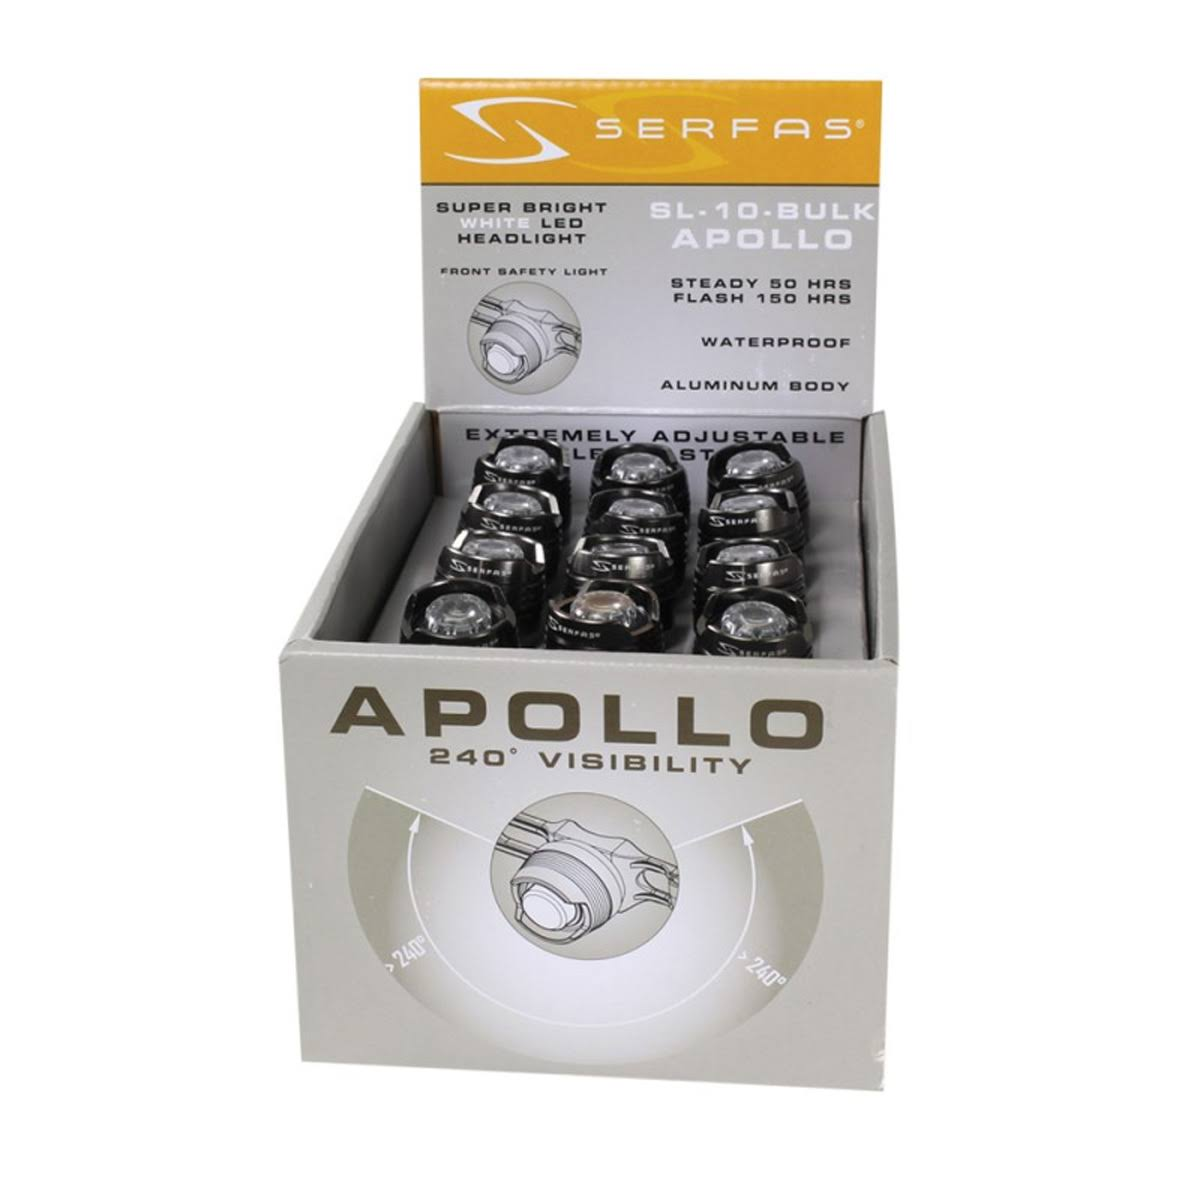 Serfas Apollo Compact LED Headlight